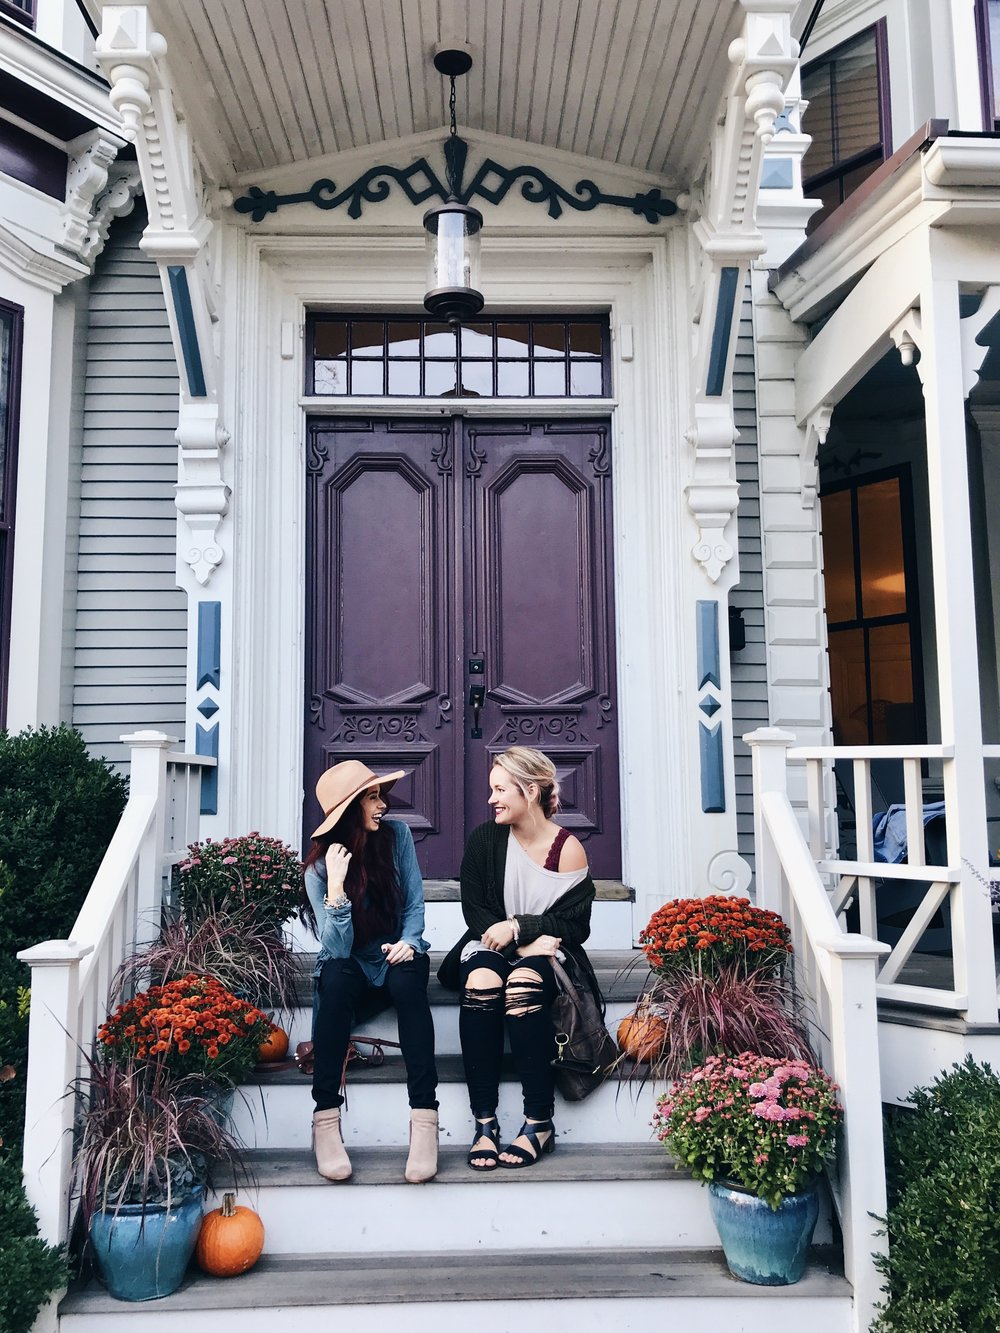 Top 10 Best Moments of 2017 by popular Indianapolis blogger Trendy in Indy